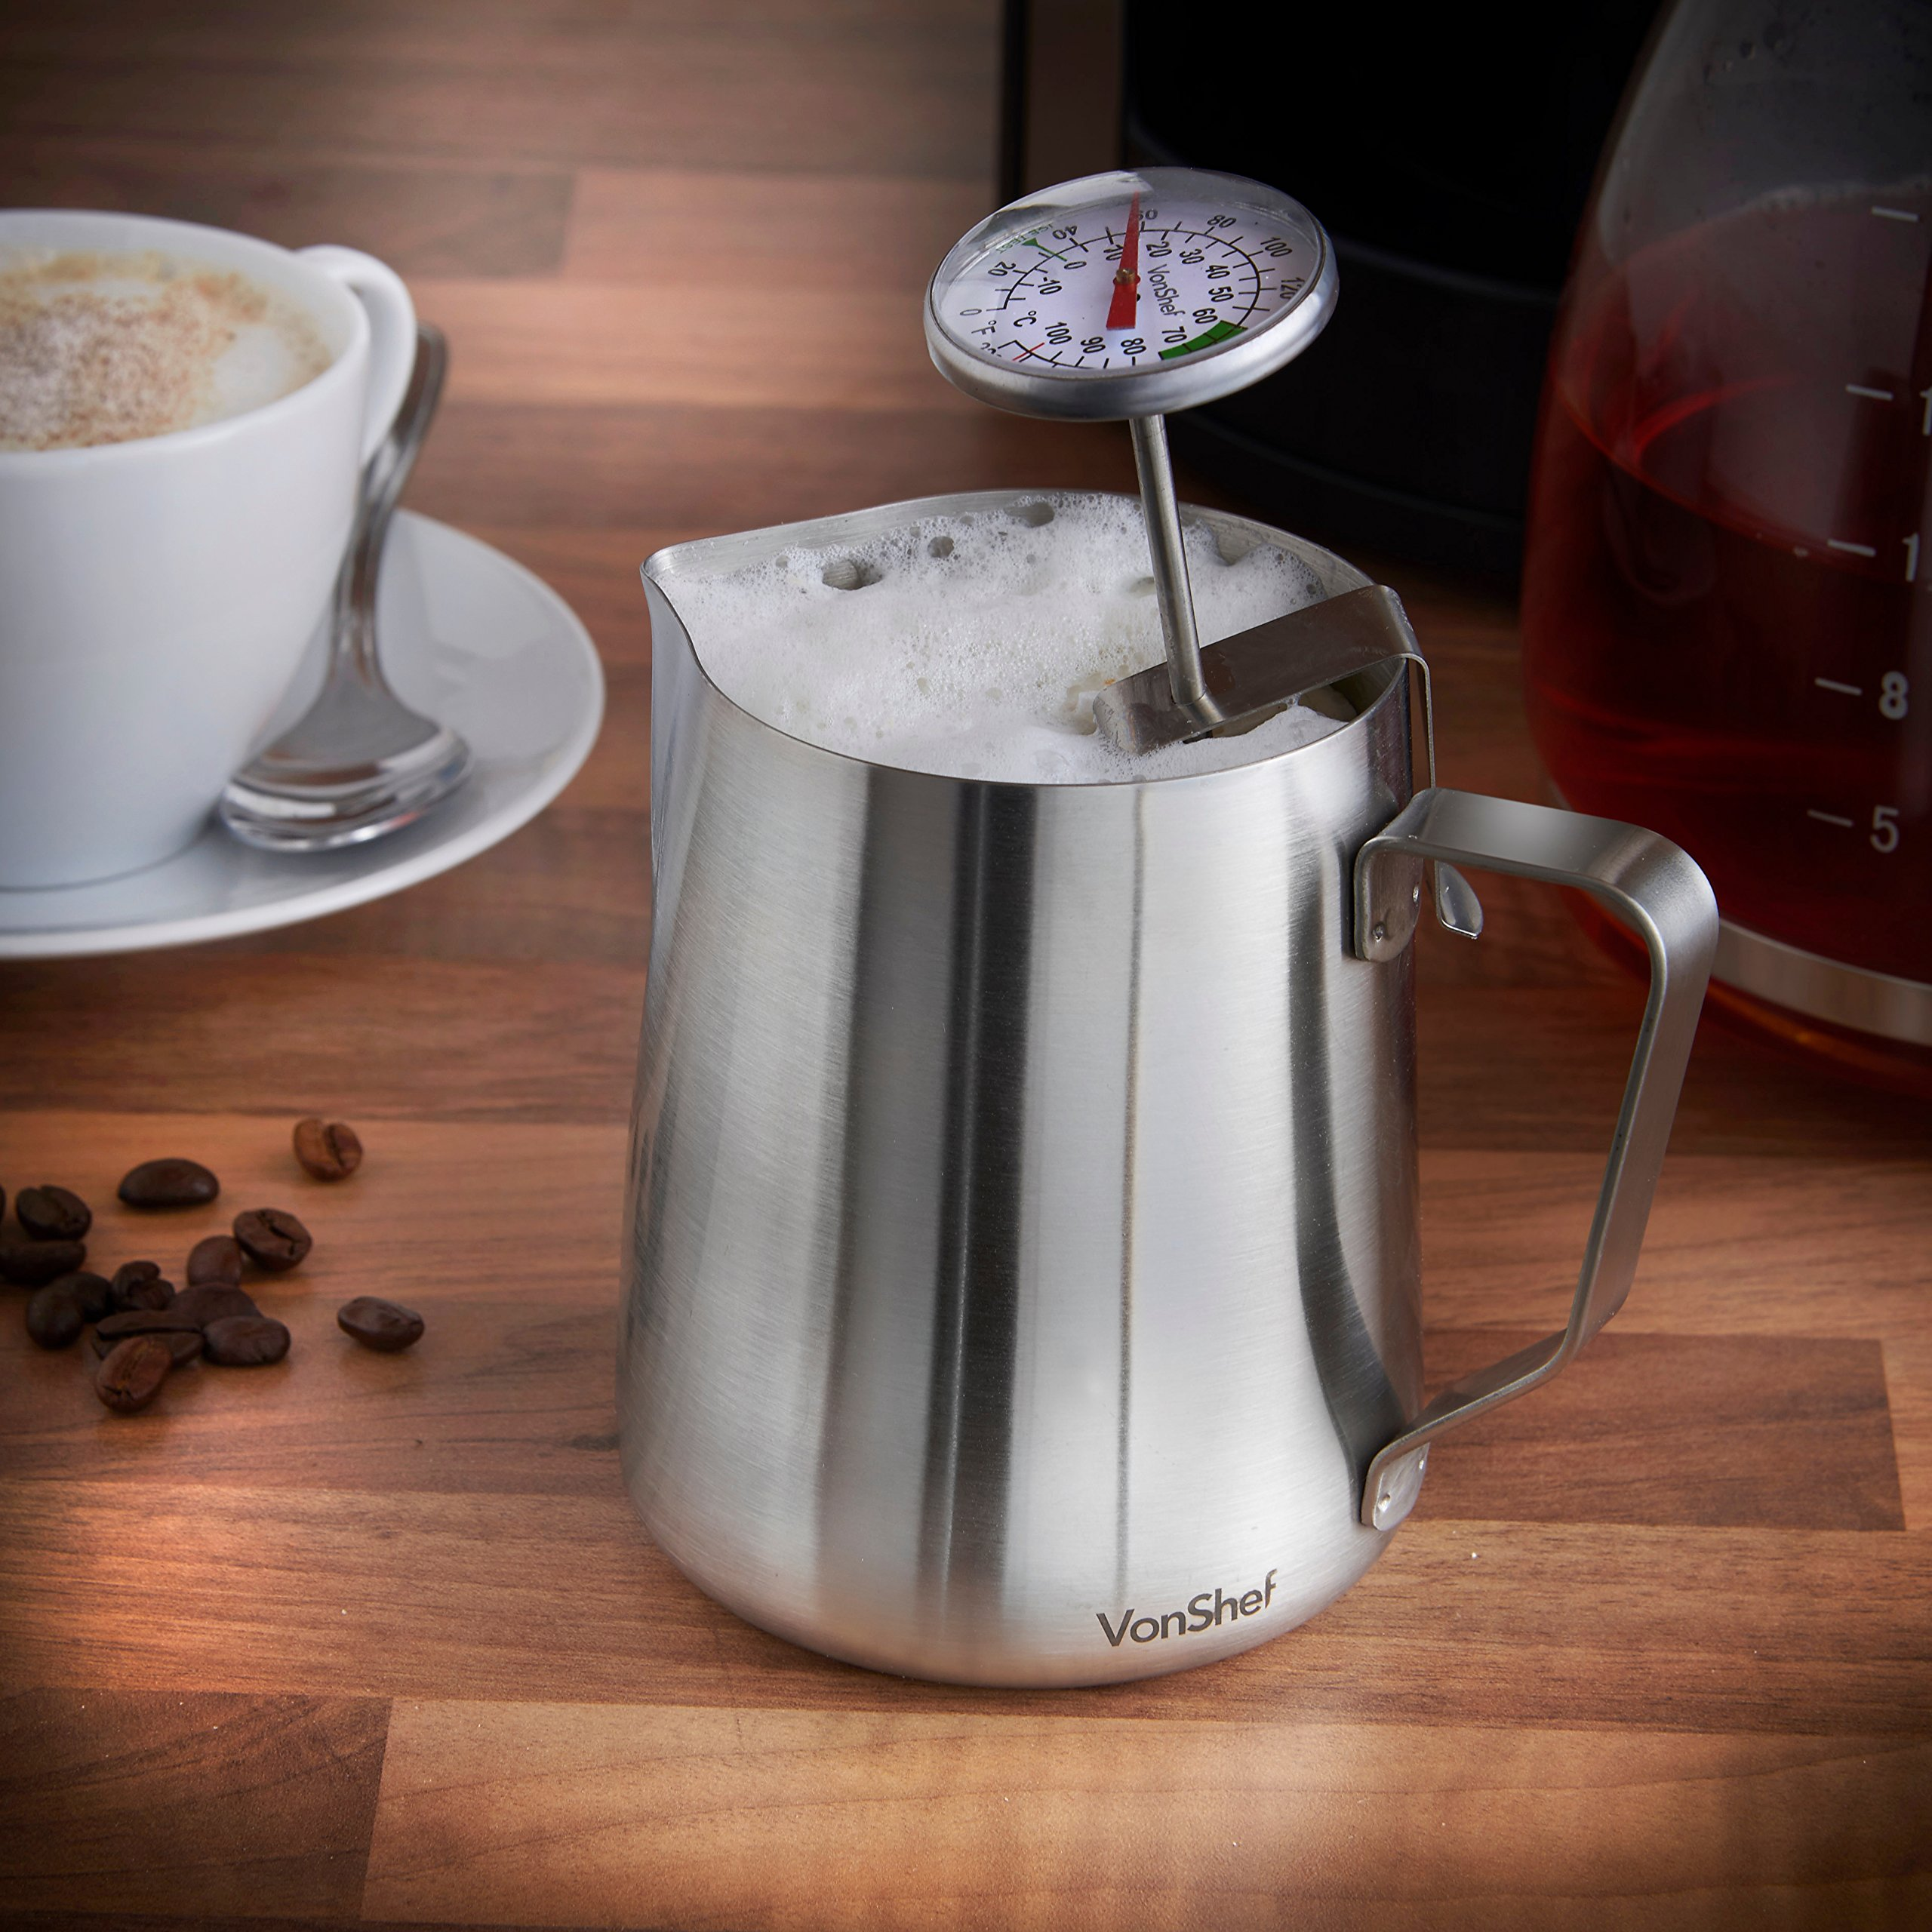 VonShef 12 Ounce Milk Frothing Pitcher Jug, Stainless